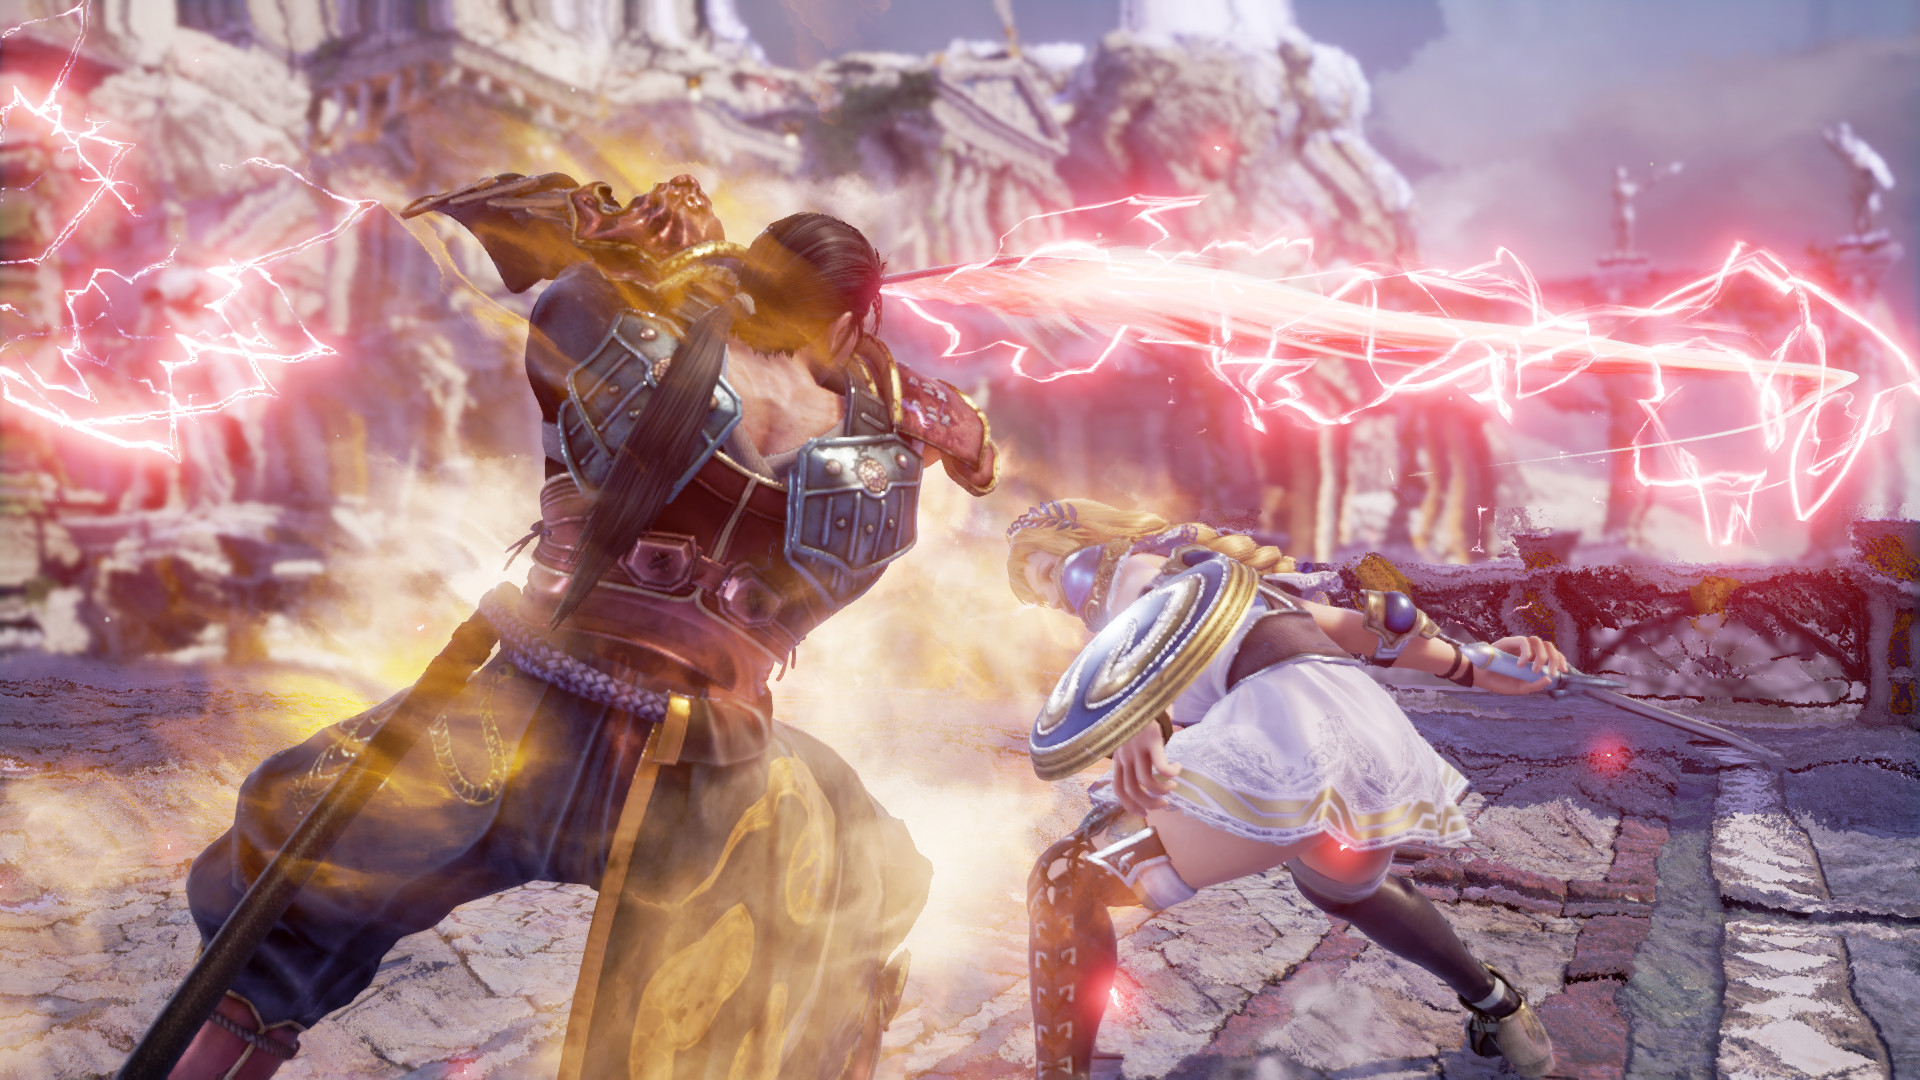 Soulcalibur VI's 1.11 patch is set for January, focuses on nerfs and network issues screenshot